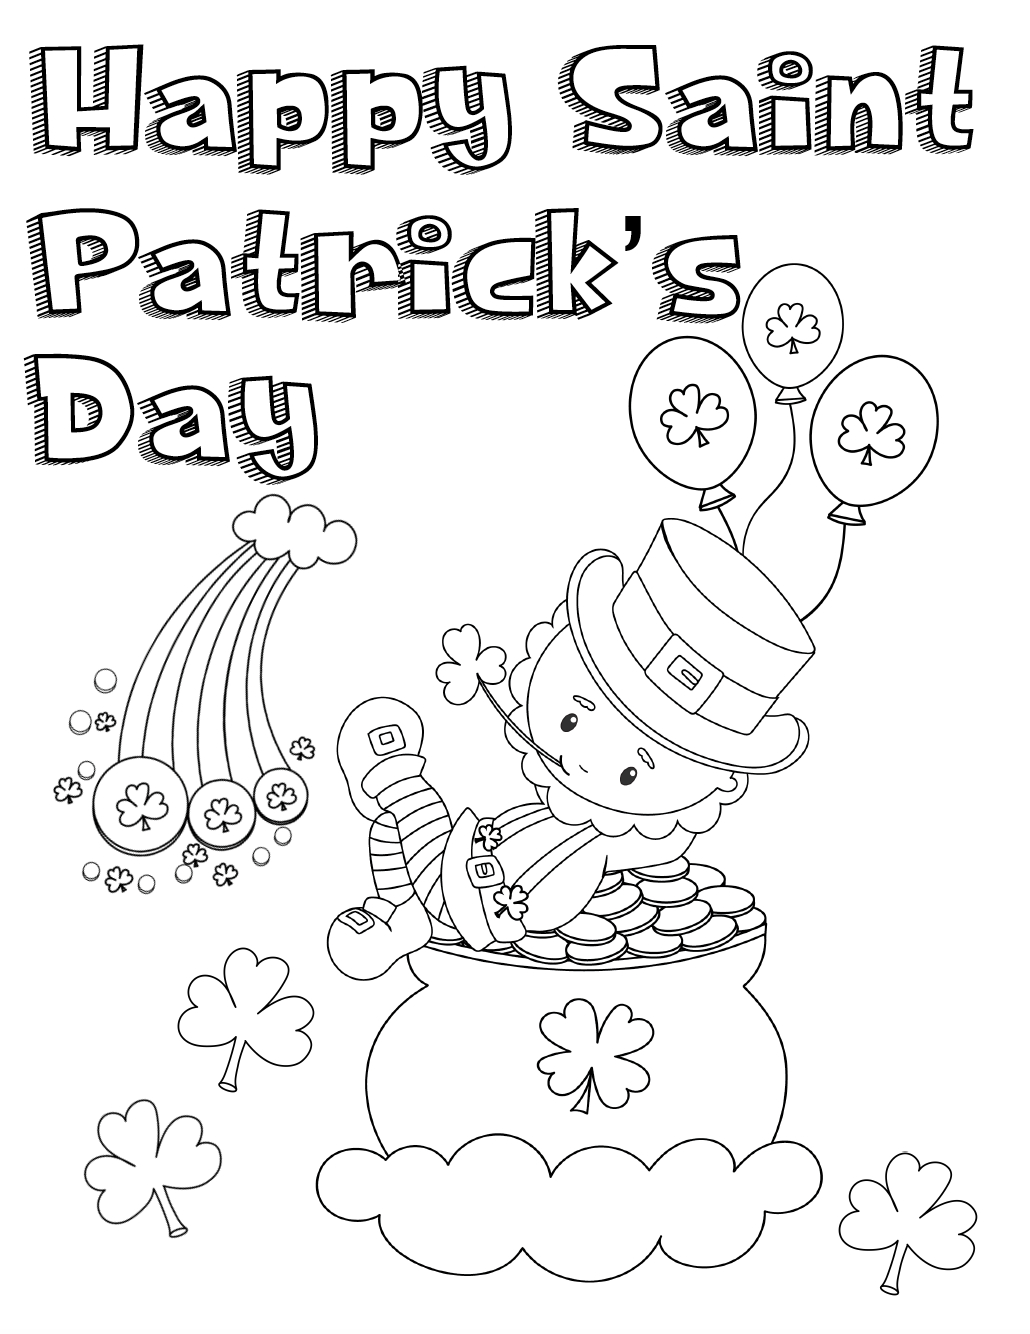 Free Printable St. Patrick's Day Coloring Pages: 4 Designs - Free Printable Saint Patrick Coloring Pages